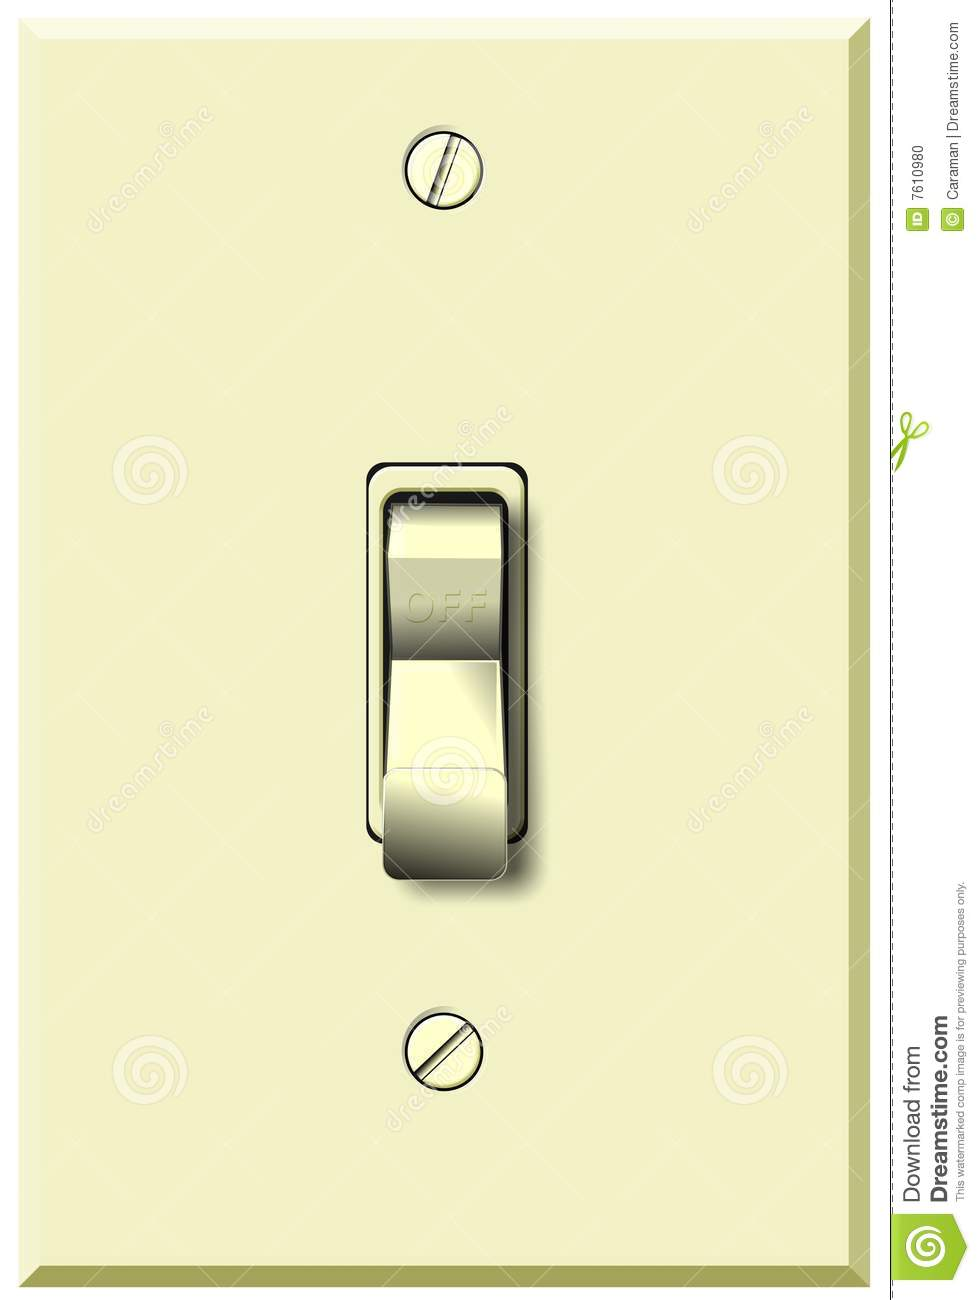 Wall Switch In Off Position Stock Illustration - Illustration of ... for Light Switch Off Position  104xkb